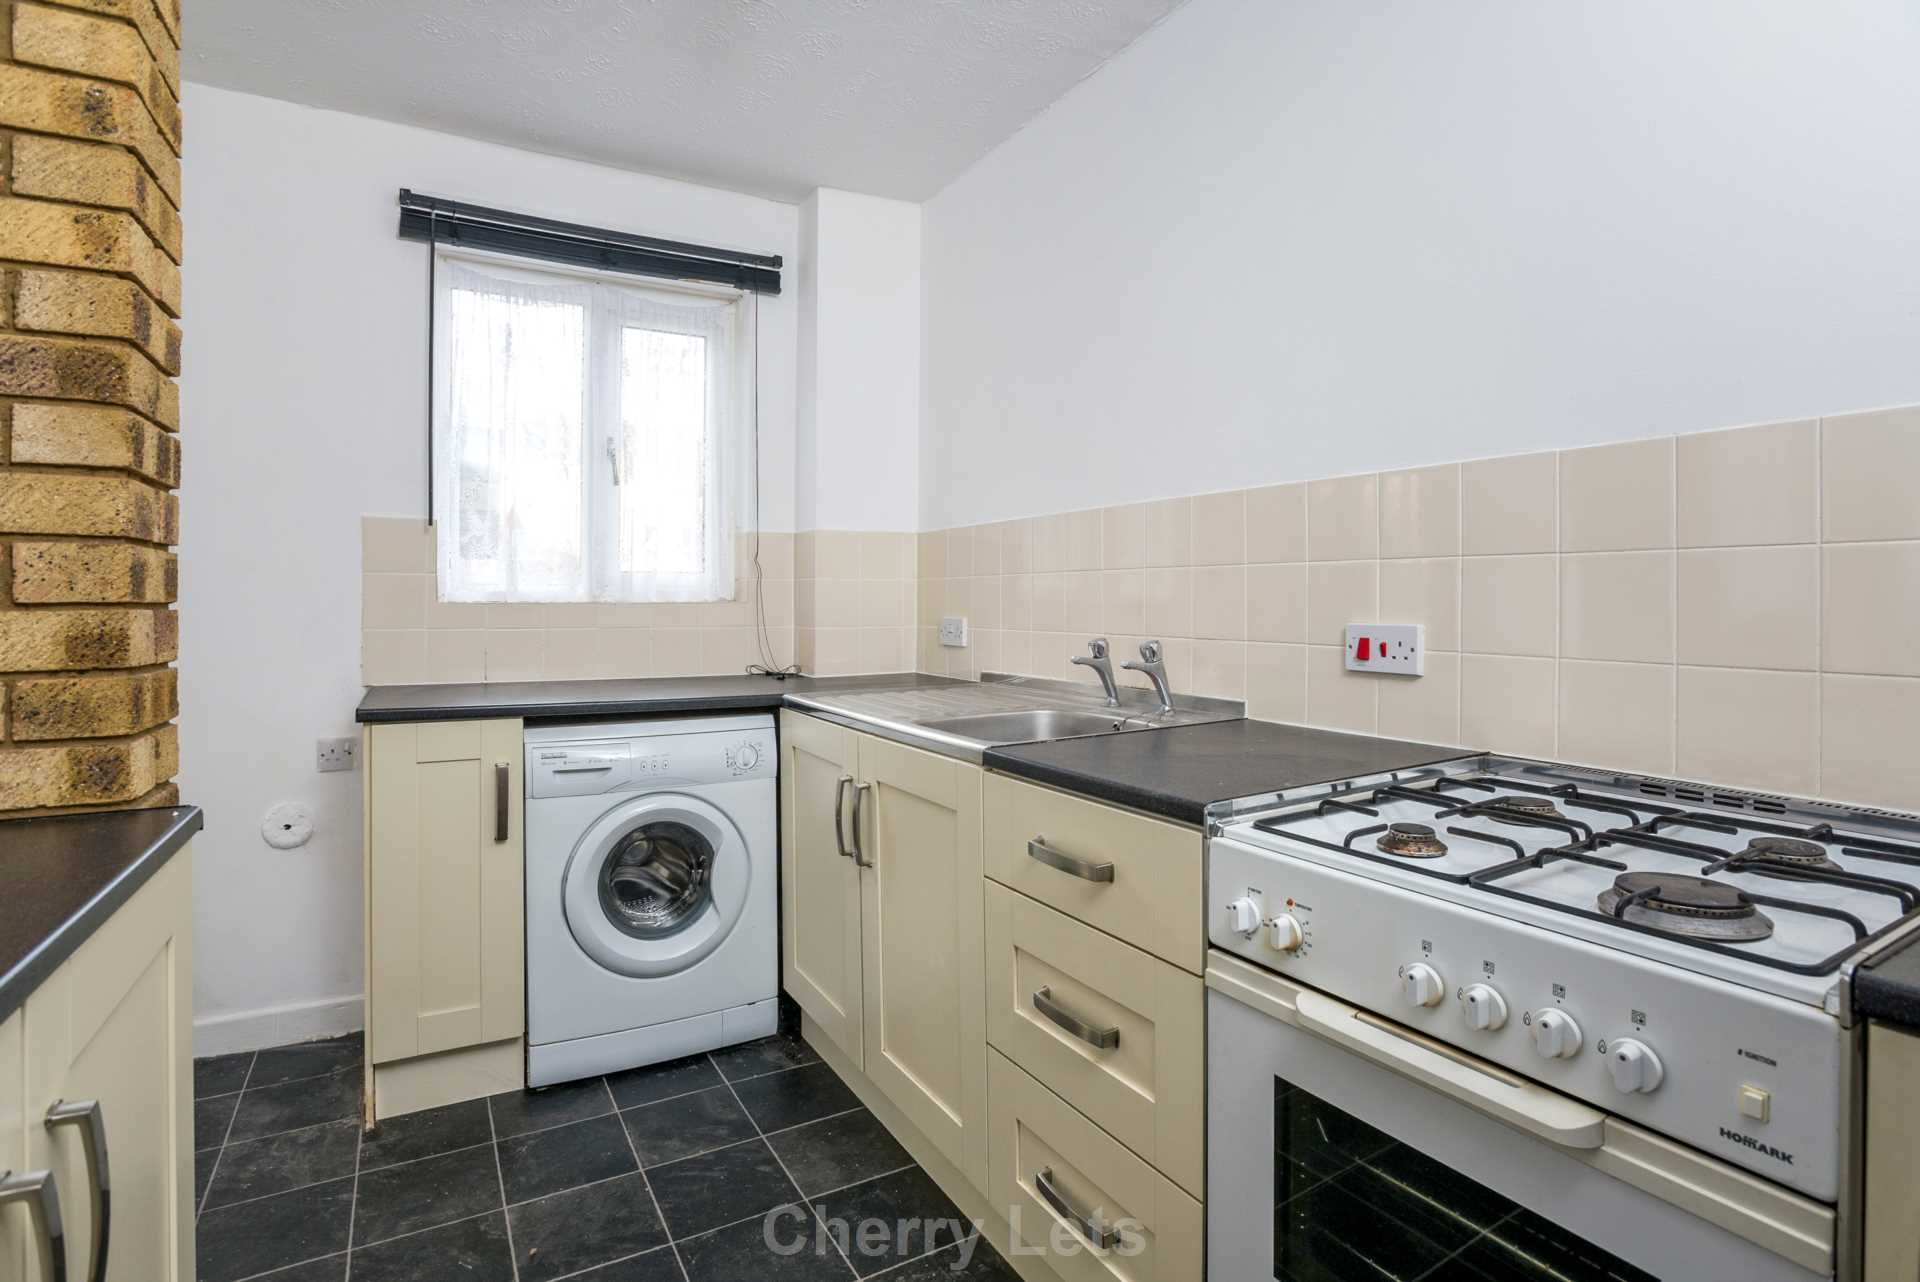 1 bed end of terrace house to rent in Bedford Close, Banbury, OX16  - Property Image 3